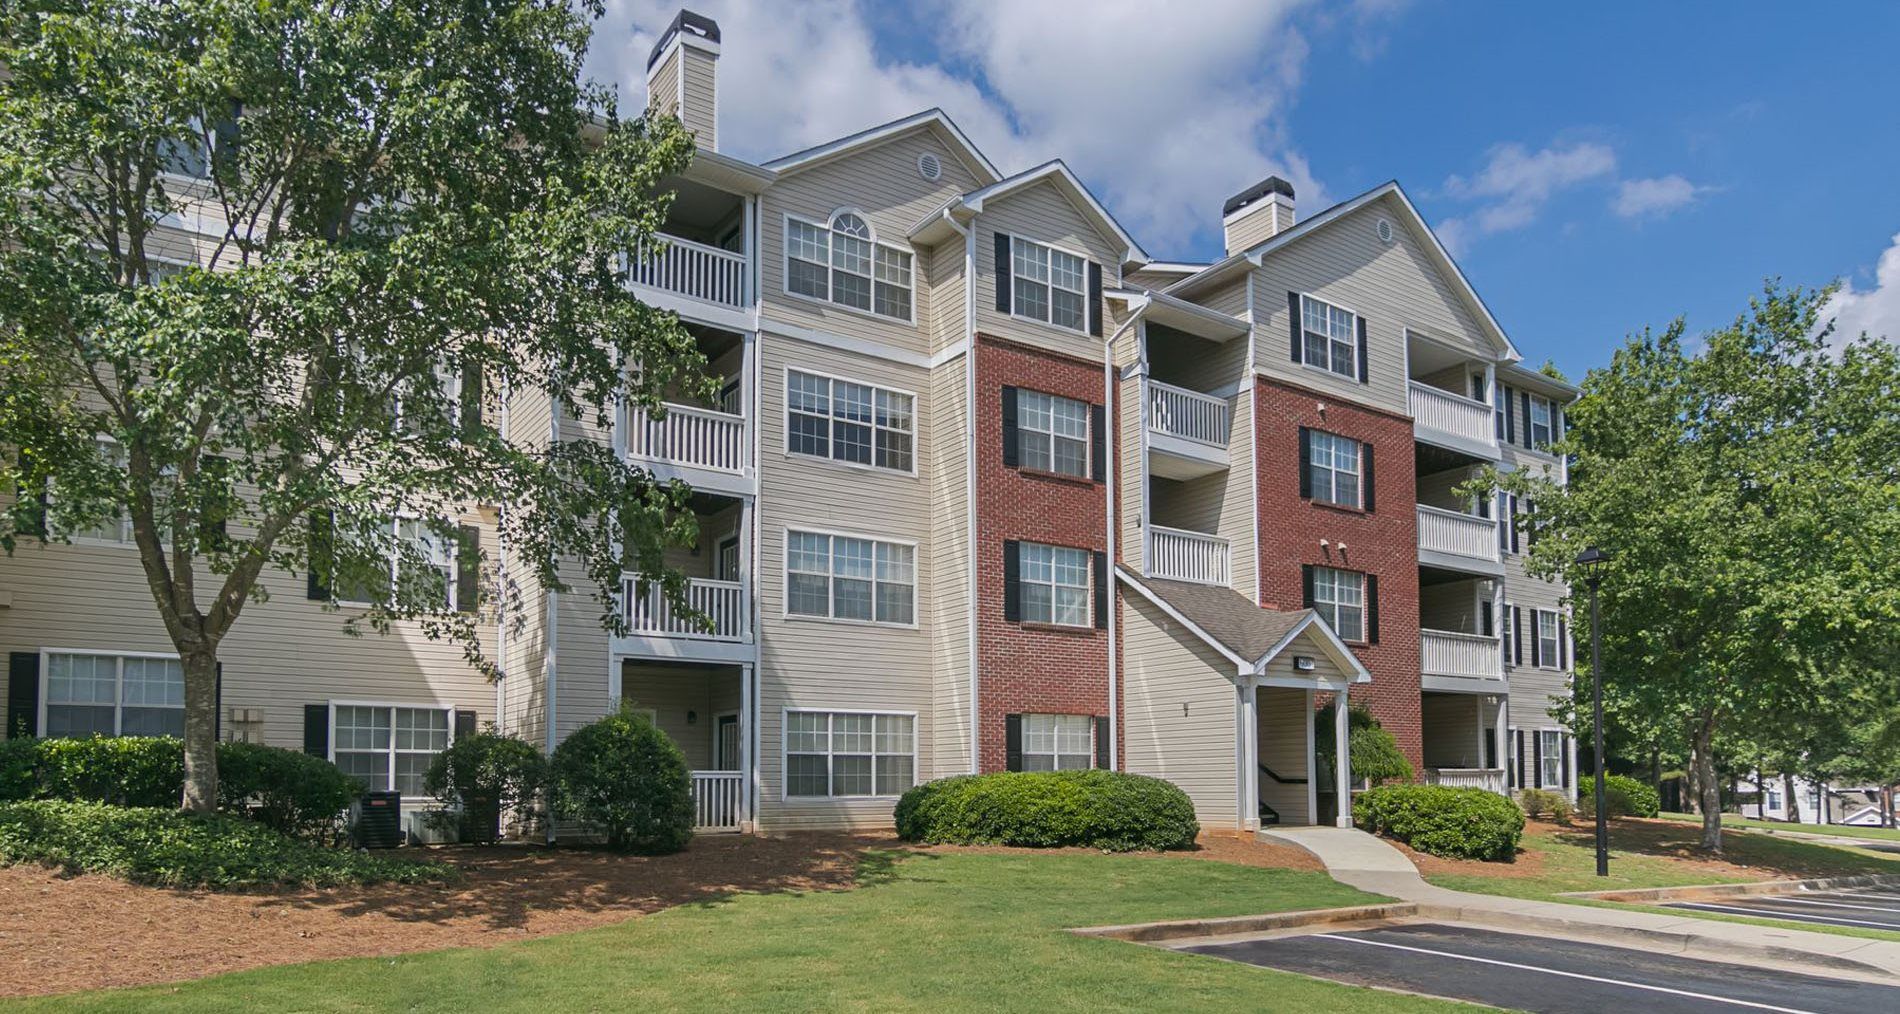 Peachy Wellington Ridge Apartments In Lawrenceville Ga Download Free Architecture Designs Scobabritishbridgeorg